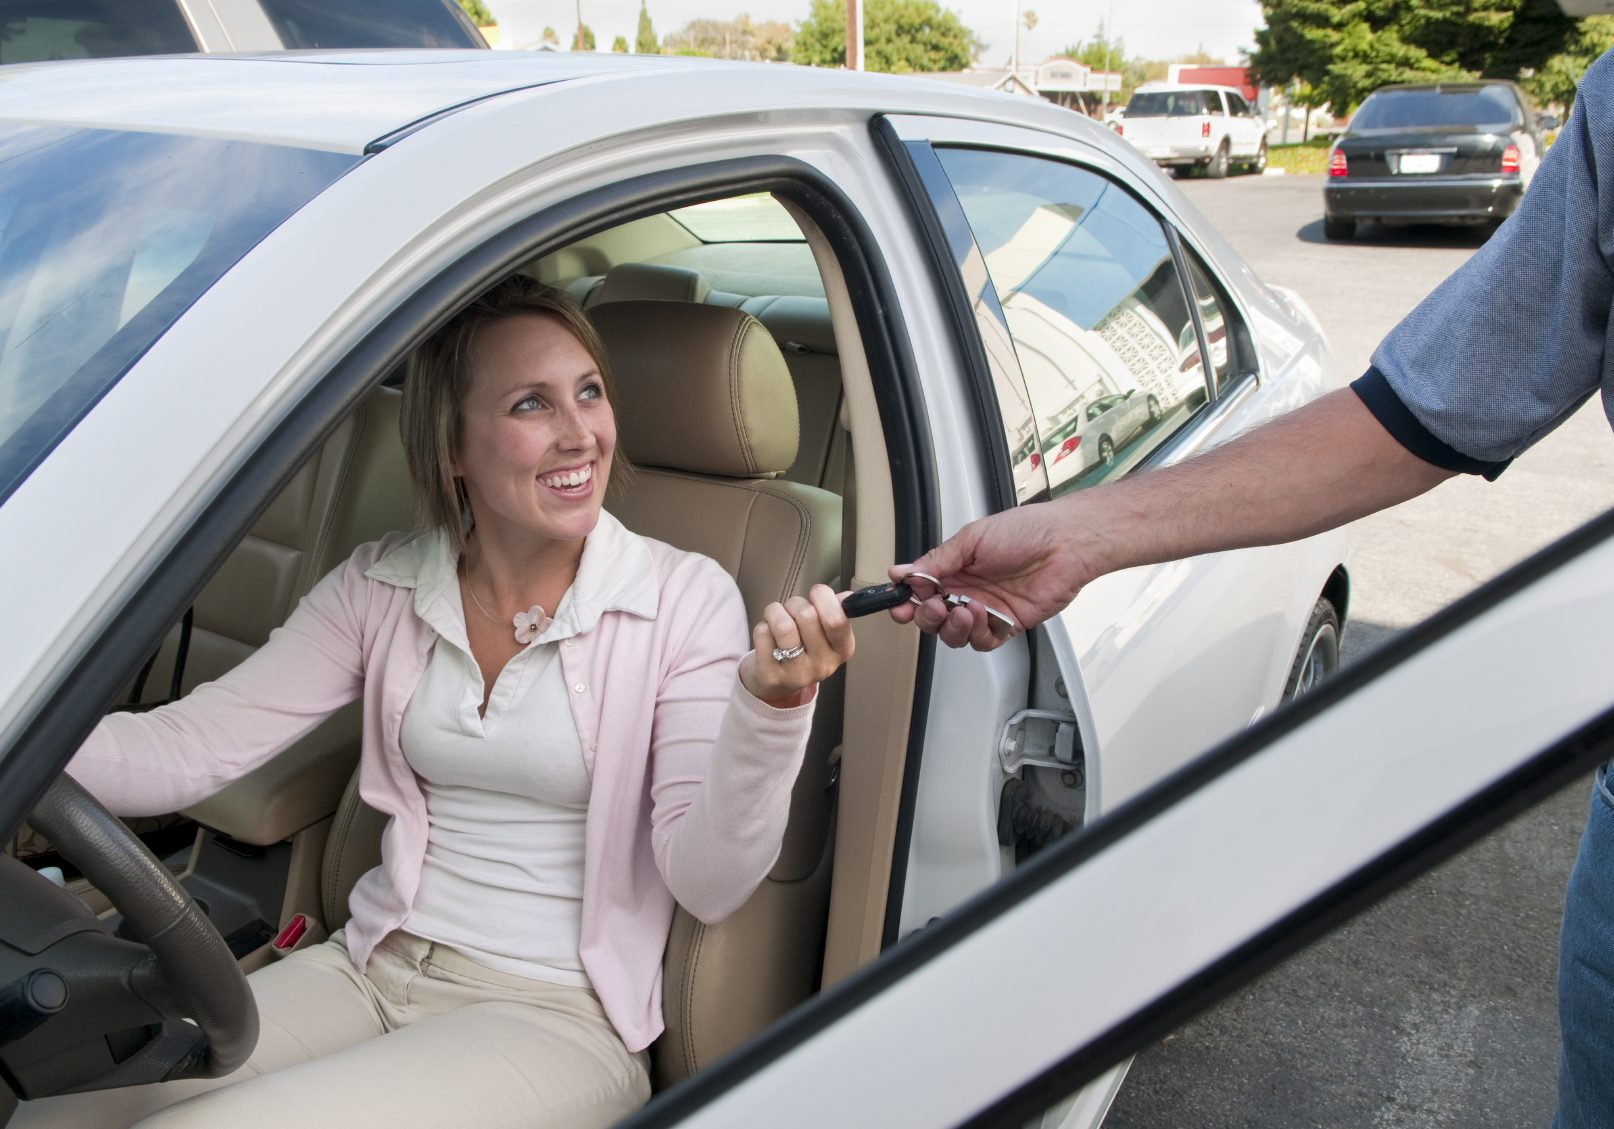 Image of a woman smiling while getting affordable auto repair